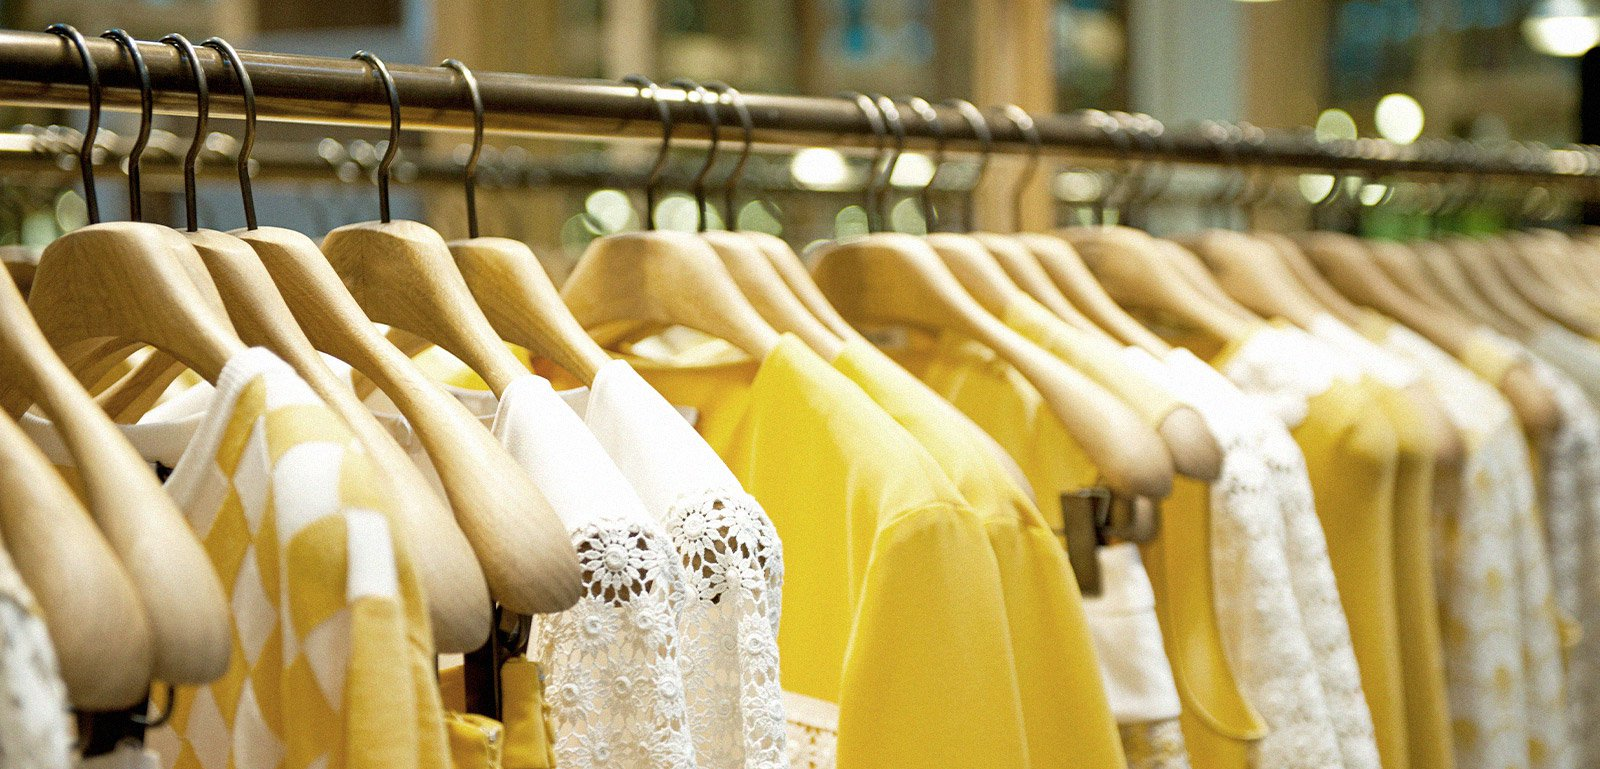 Manufacture of Wearing Apparels and Clothing Accessories (Year 2019)